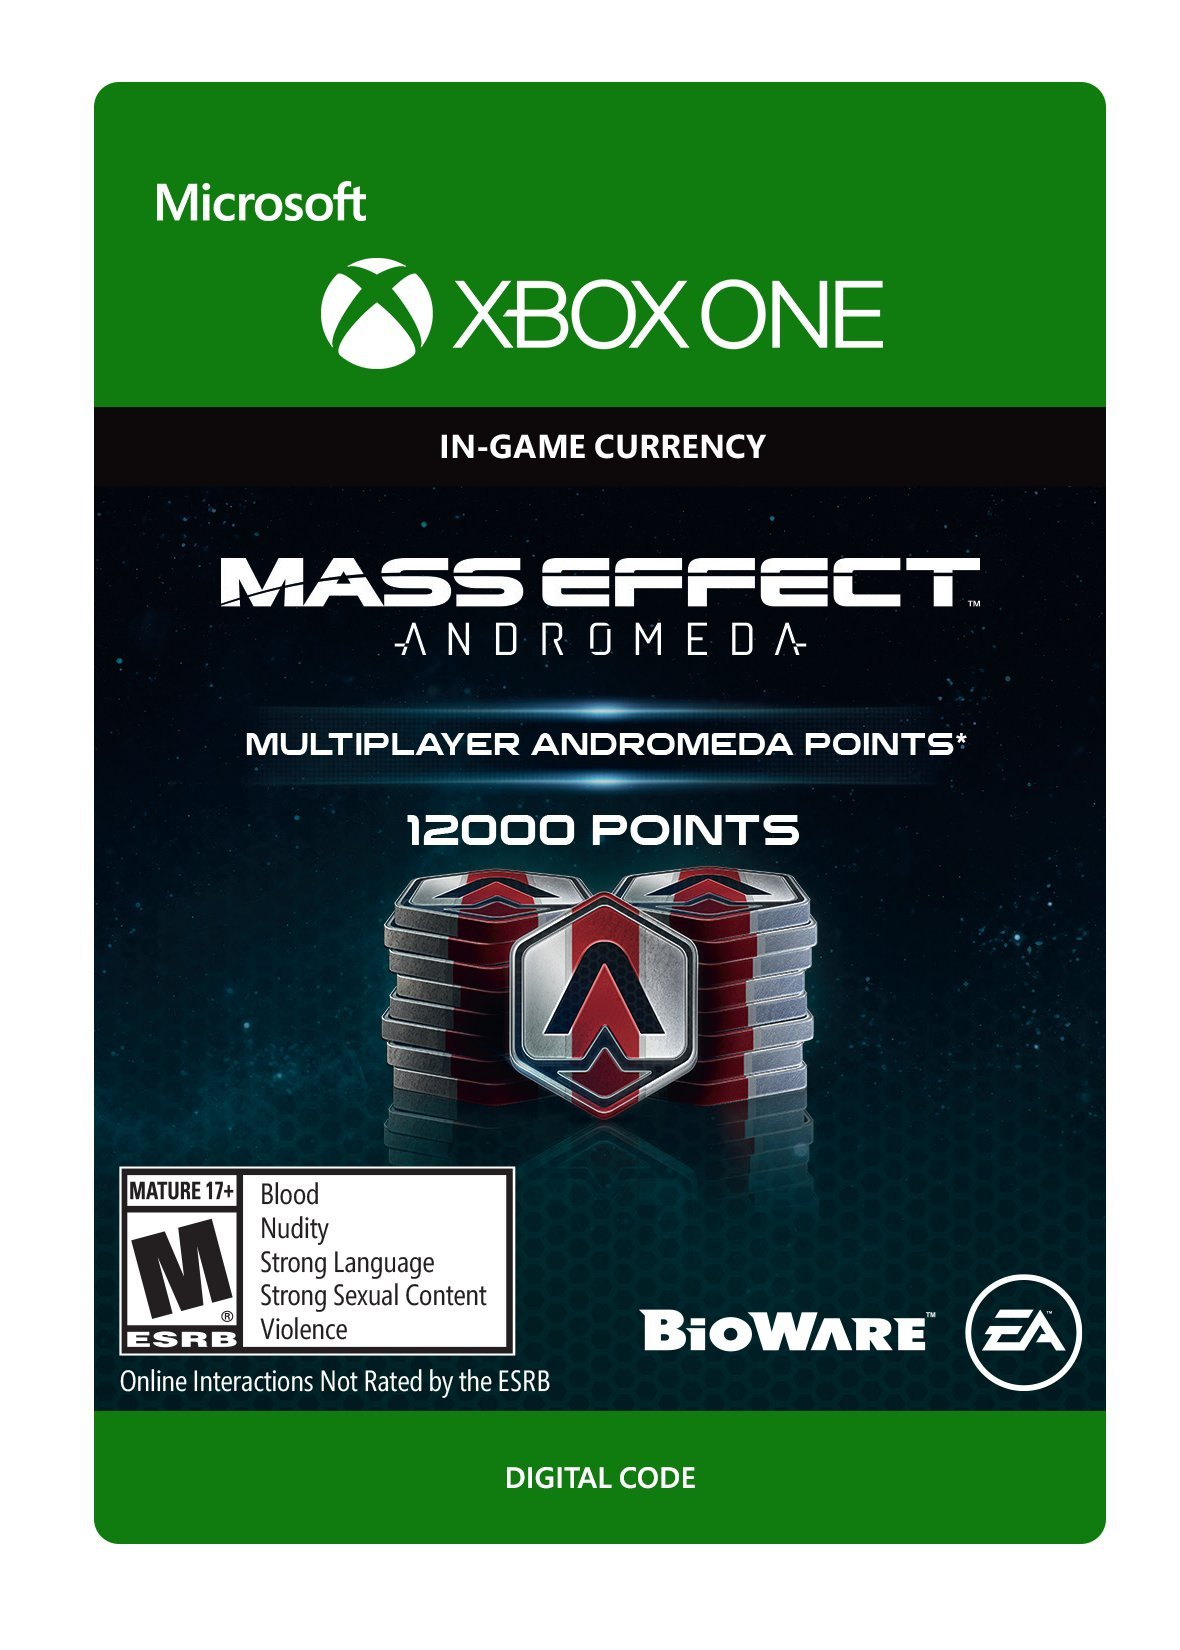 Mass Effect: Andromeda: Andromeda Points Pack 6 (12000 PTS) - Xbox One [Digital Code]